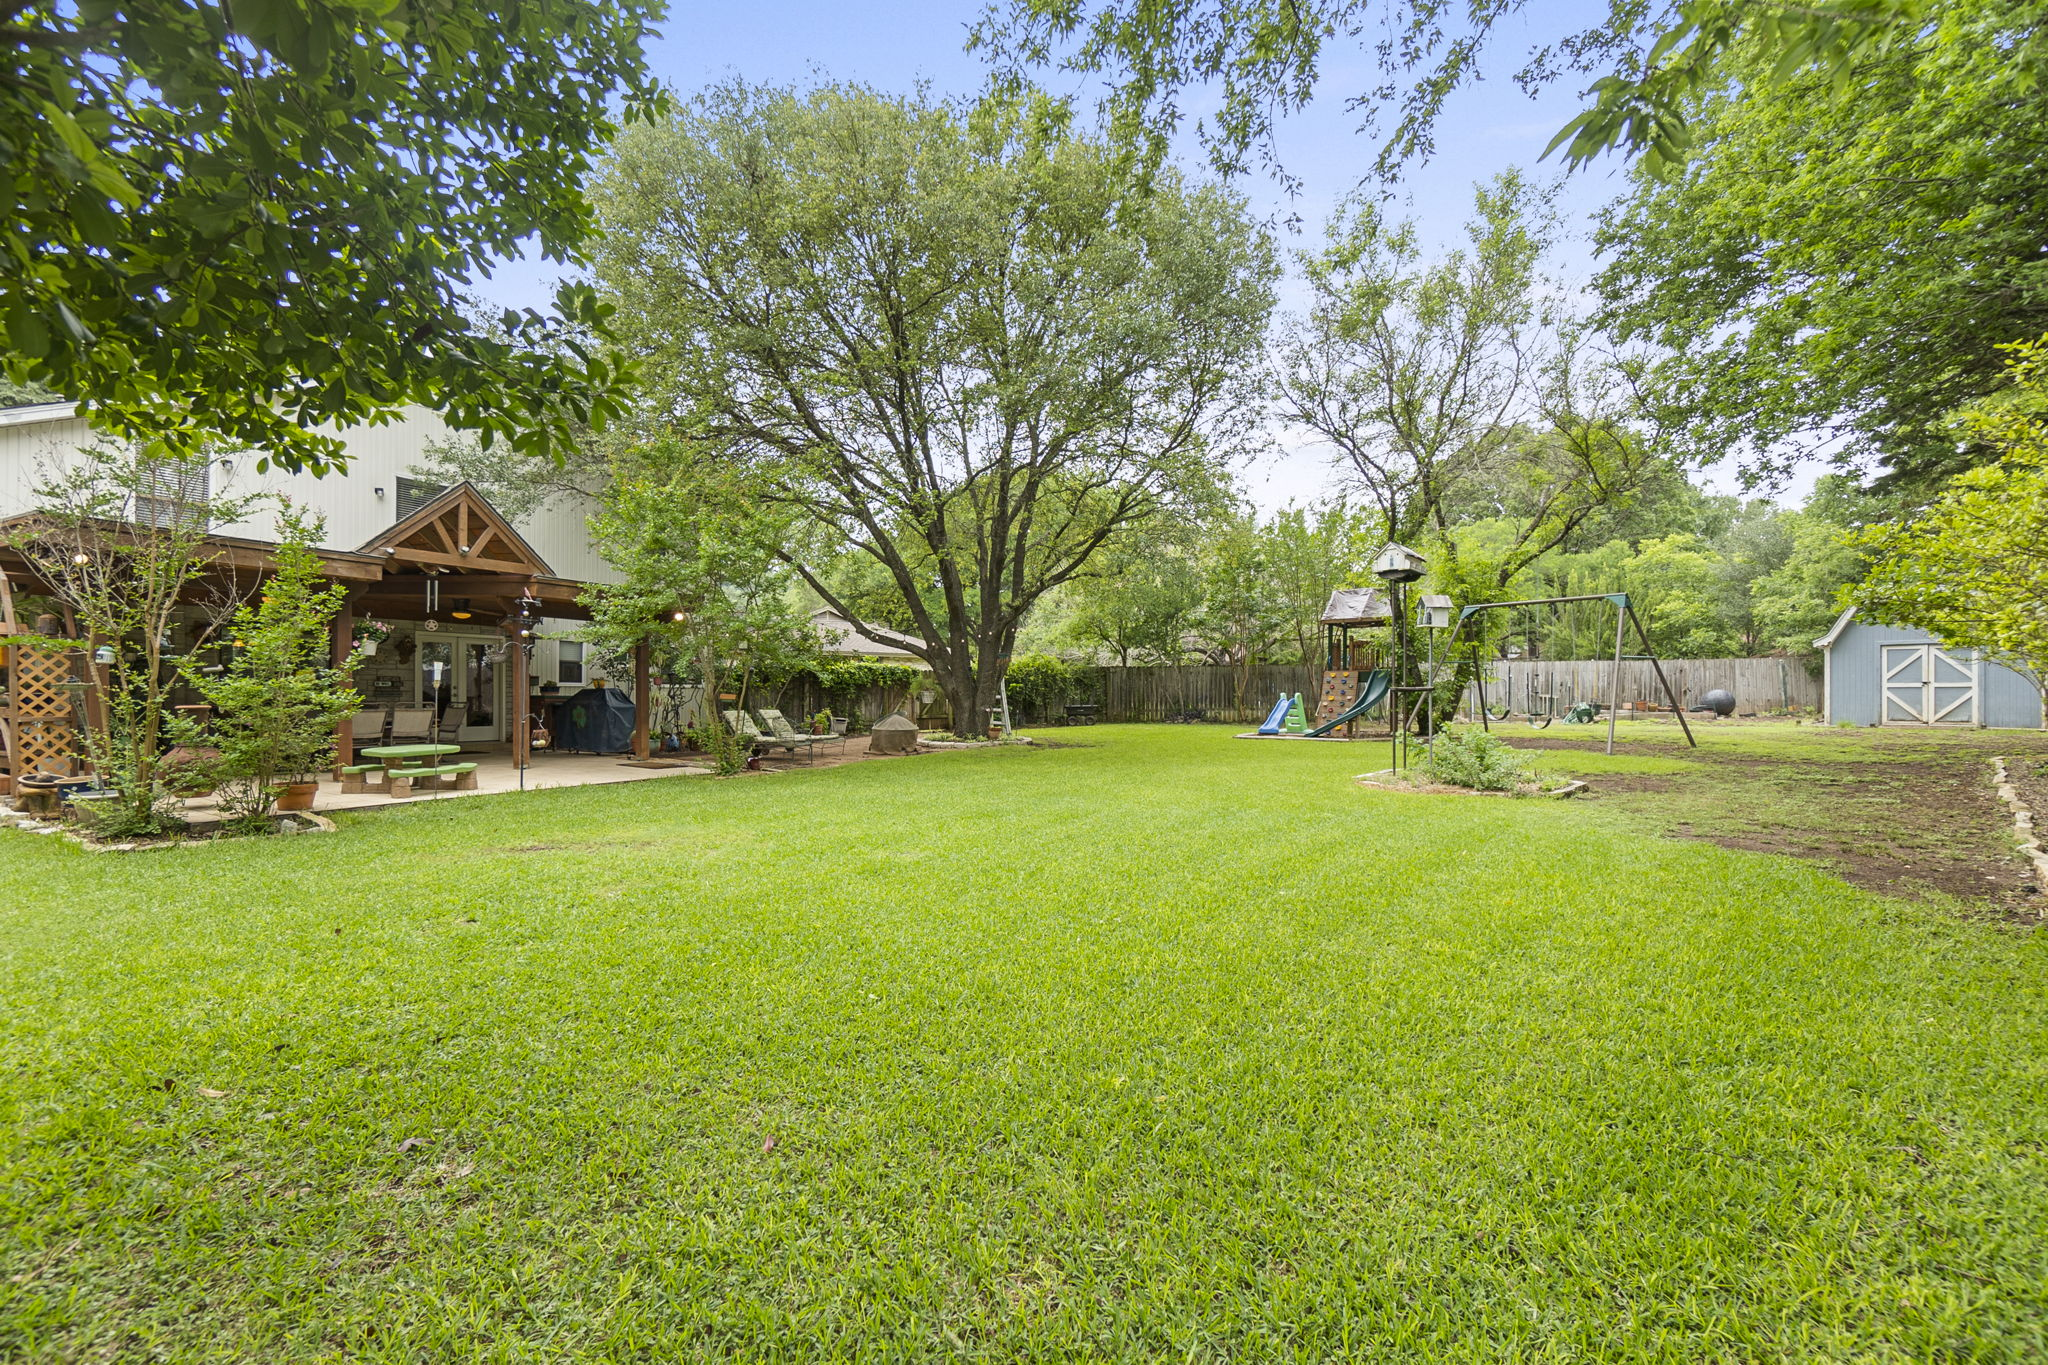 Lush grass, shows room for pool and a cabana!